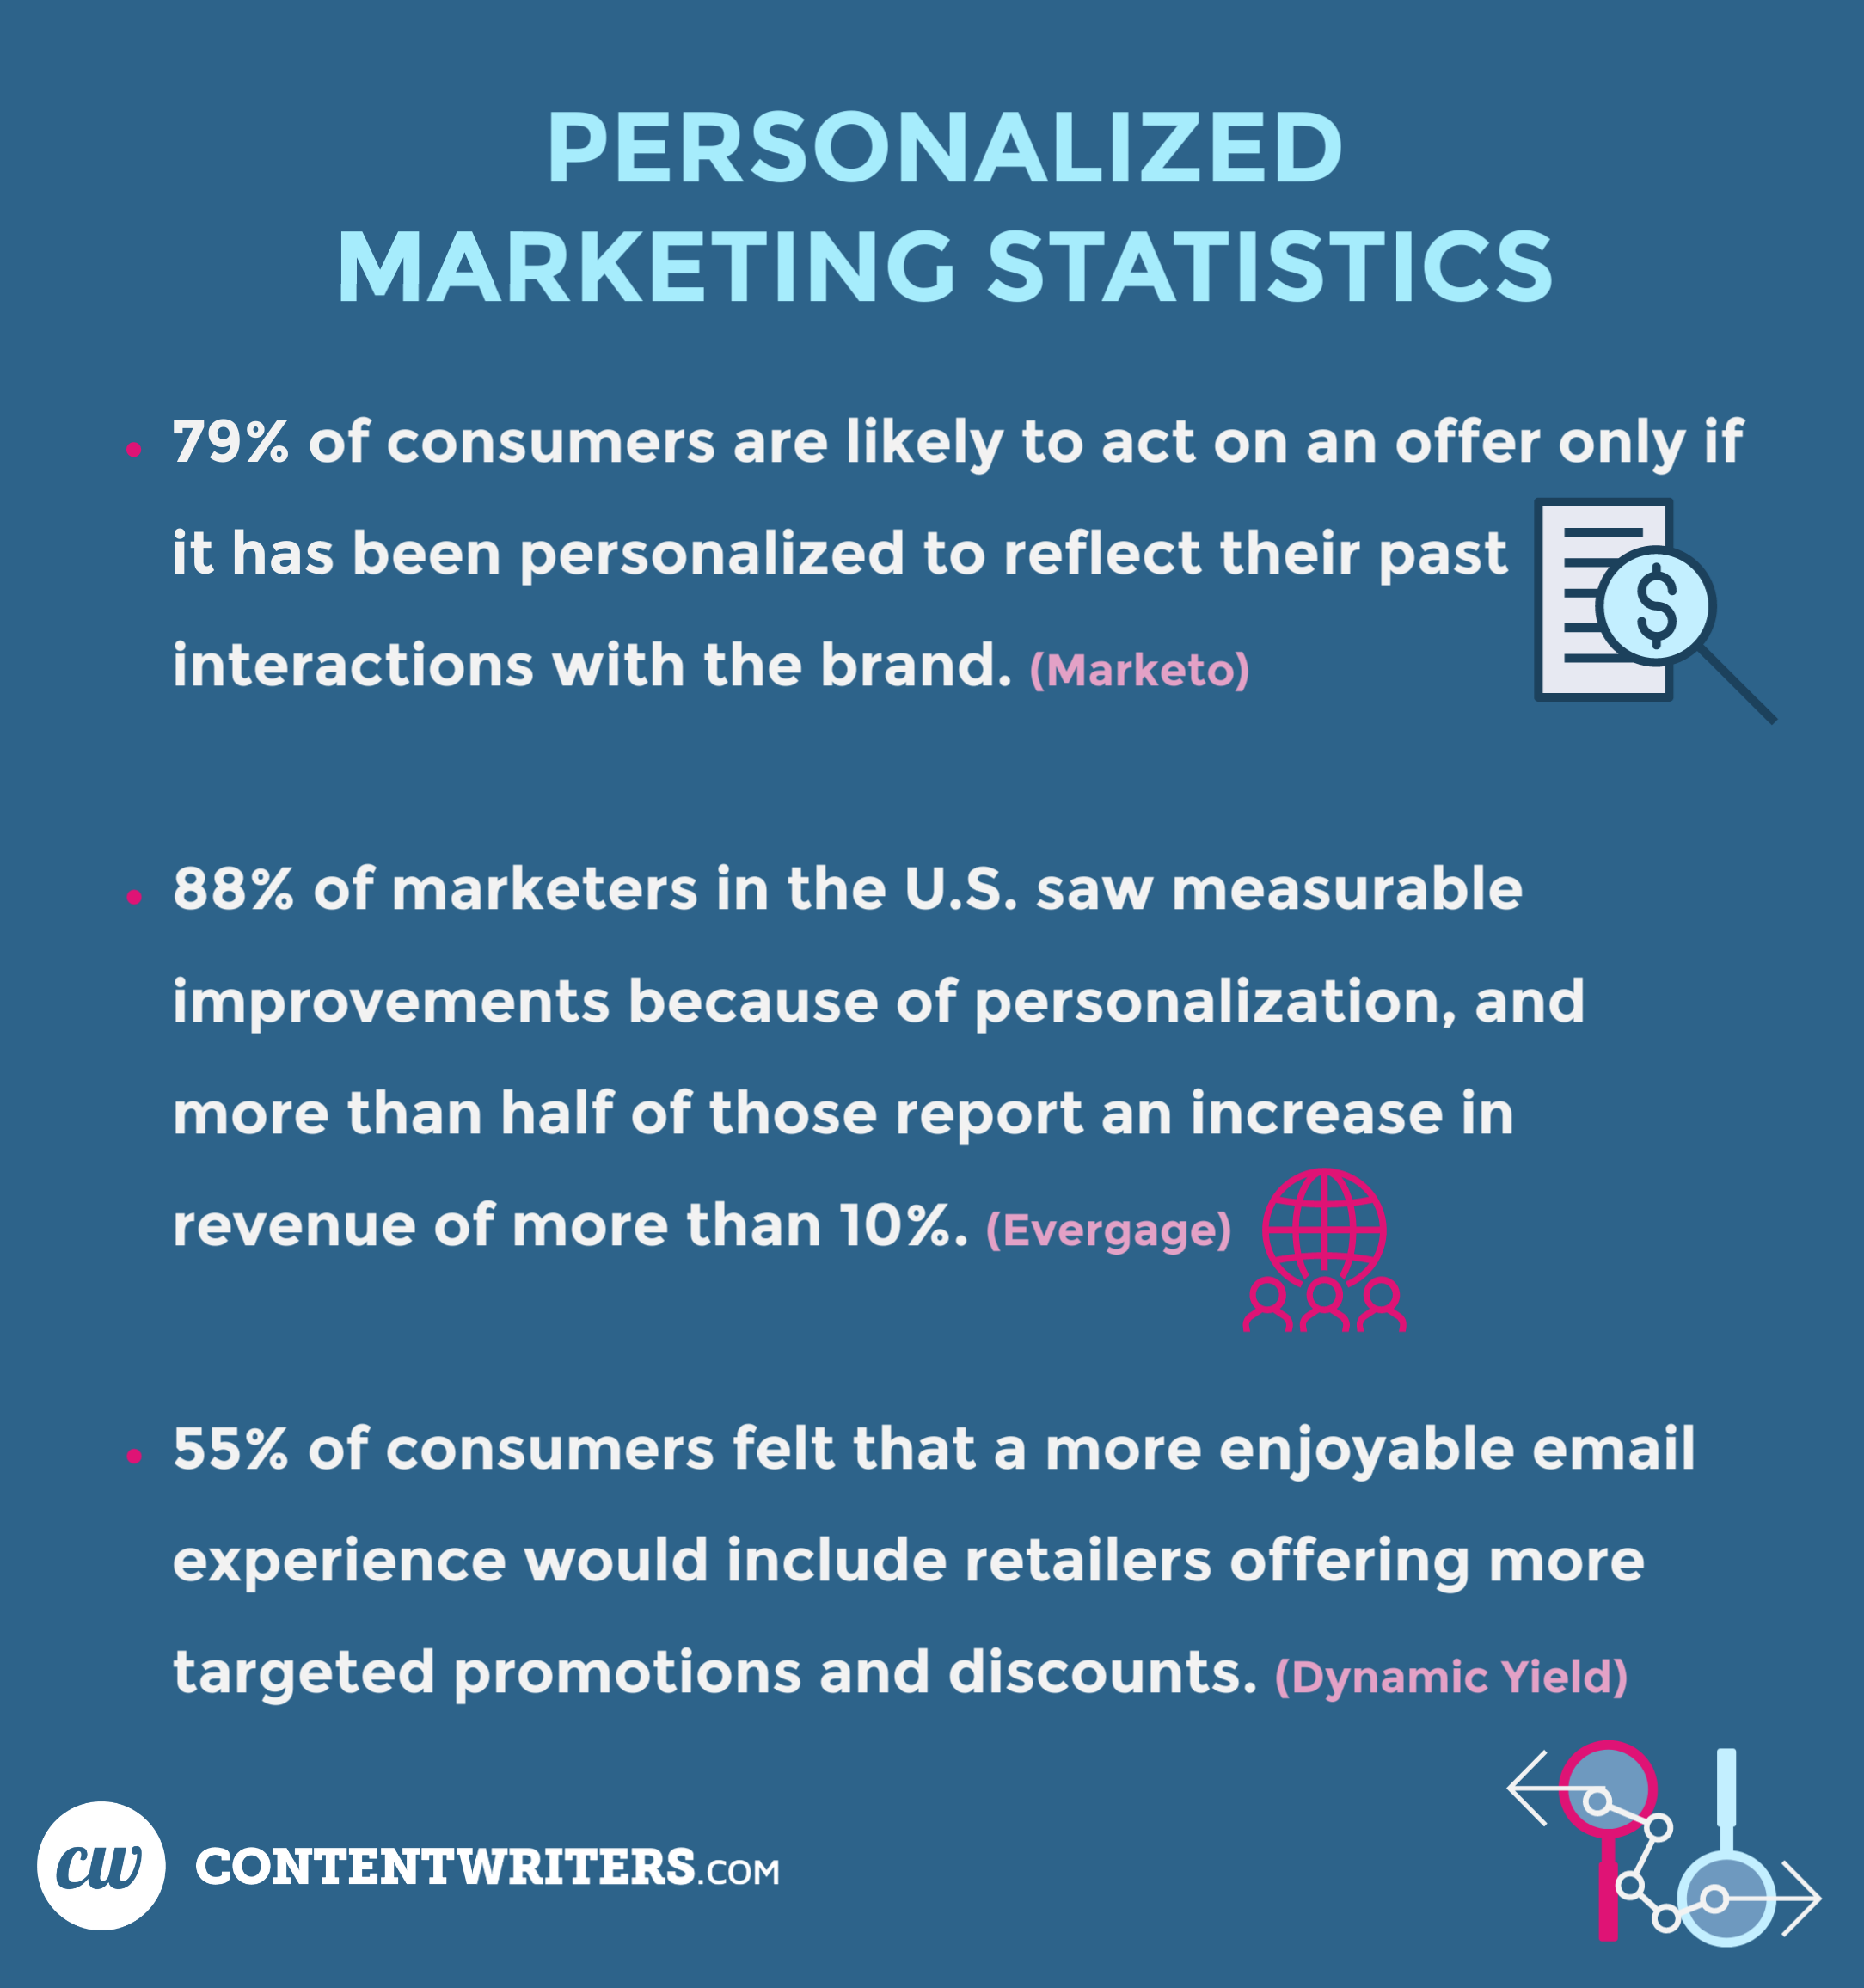 PERSONALIZED MARKETING STATISTICS  - 79% of consumers are likely to act on an offer only if it has been personalized to reflect their past interactions with brand  - 88% of marketers in the US saw measurable improvements because of personalization, and more than half of those report an increase in revenue of more than 10%  - 55% of consumers felt that a more enjoyable email experience would include retailers offering more targeted promotions and discounts